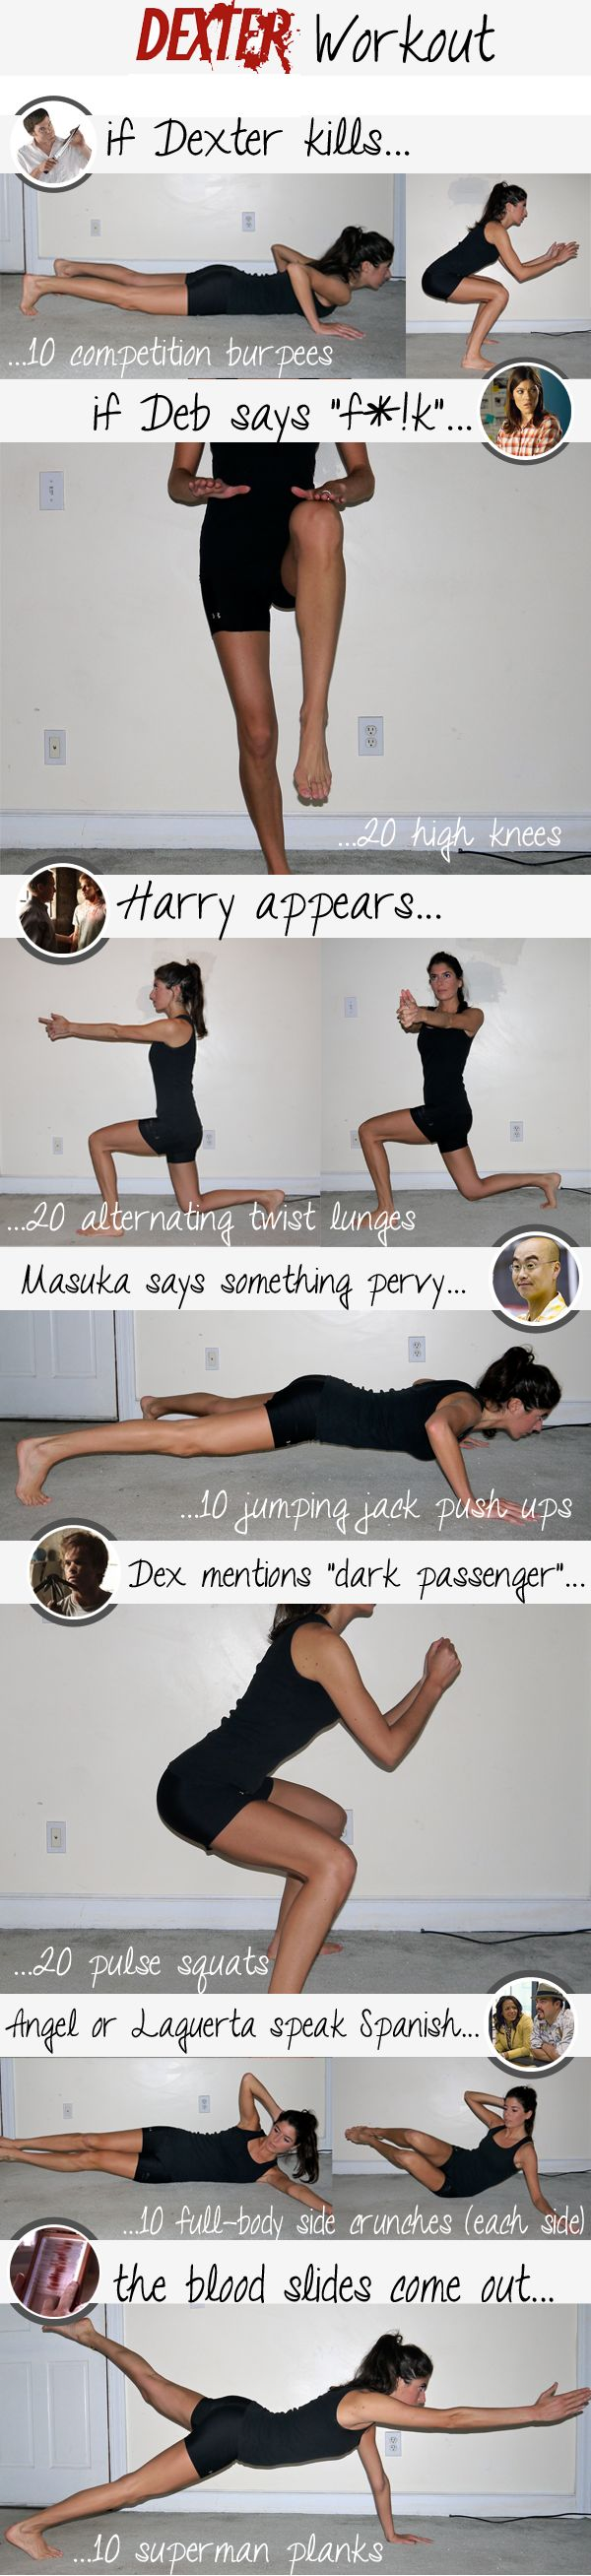 Dexter workout! Love this! When Dexter Kills do 10 burpees, When Deb says fuck 20 high knees, When Harry appears 20 alternating twist lunges, When Matsuka says a pervy comment do 10 jumping jack push ups, Dexter mentions Dark Passenger do 20 pulse squats, When Angel/Laguerta speak spanish do 10 side crunches (each side), and finally when the blood slides come out 10 superman planks!